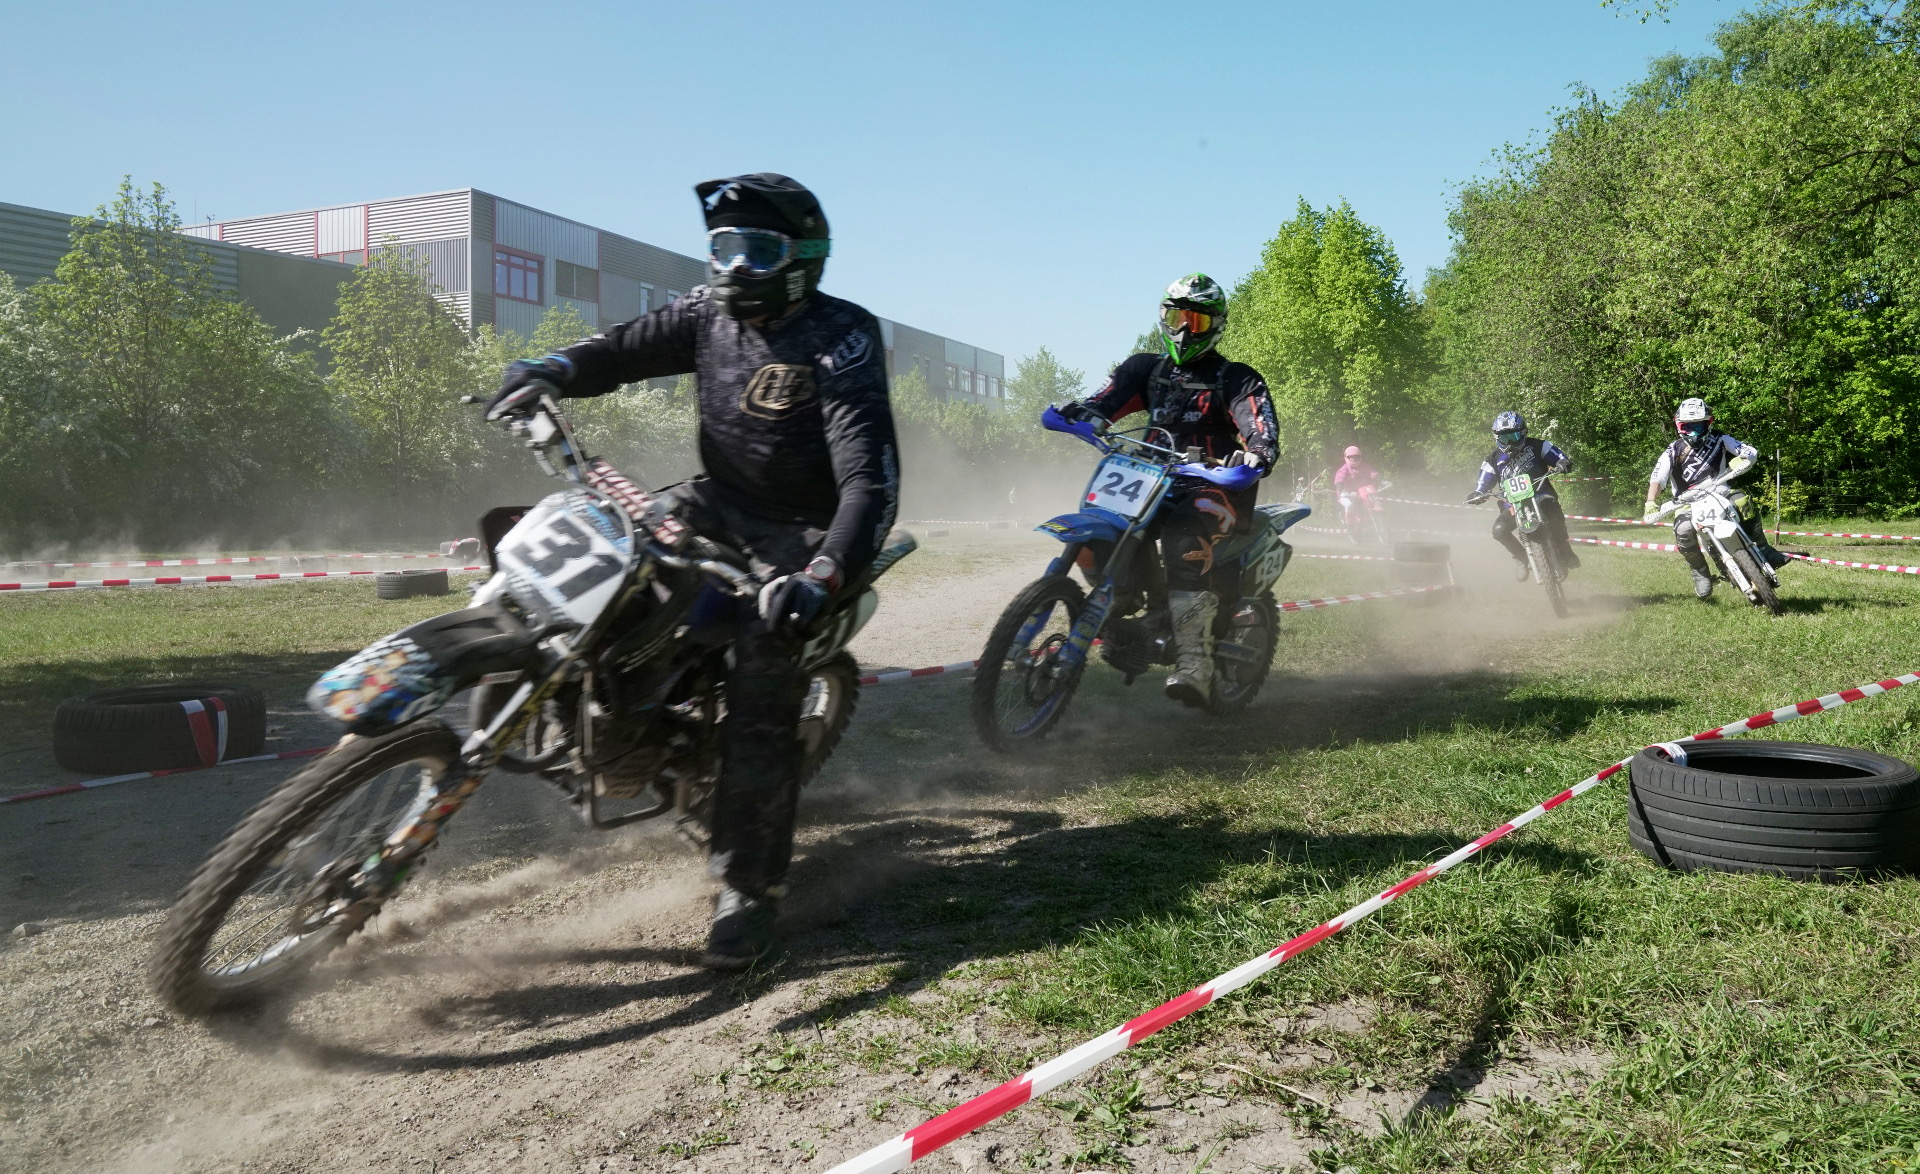 Mofa-Enduro Action 2018